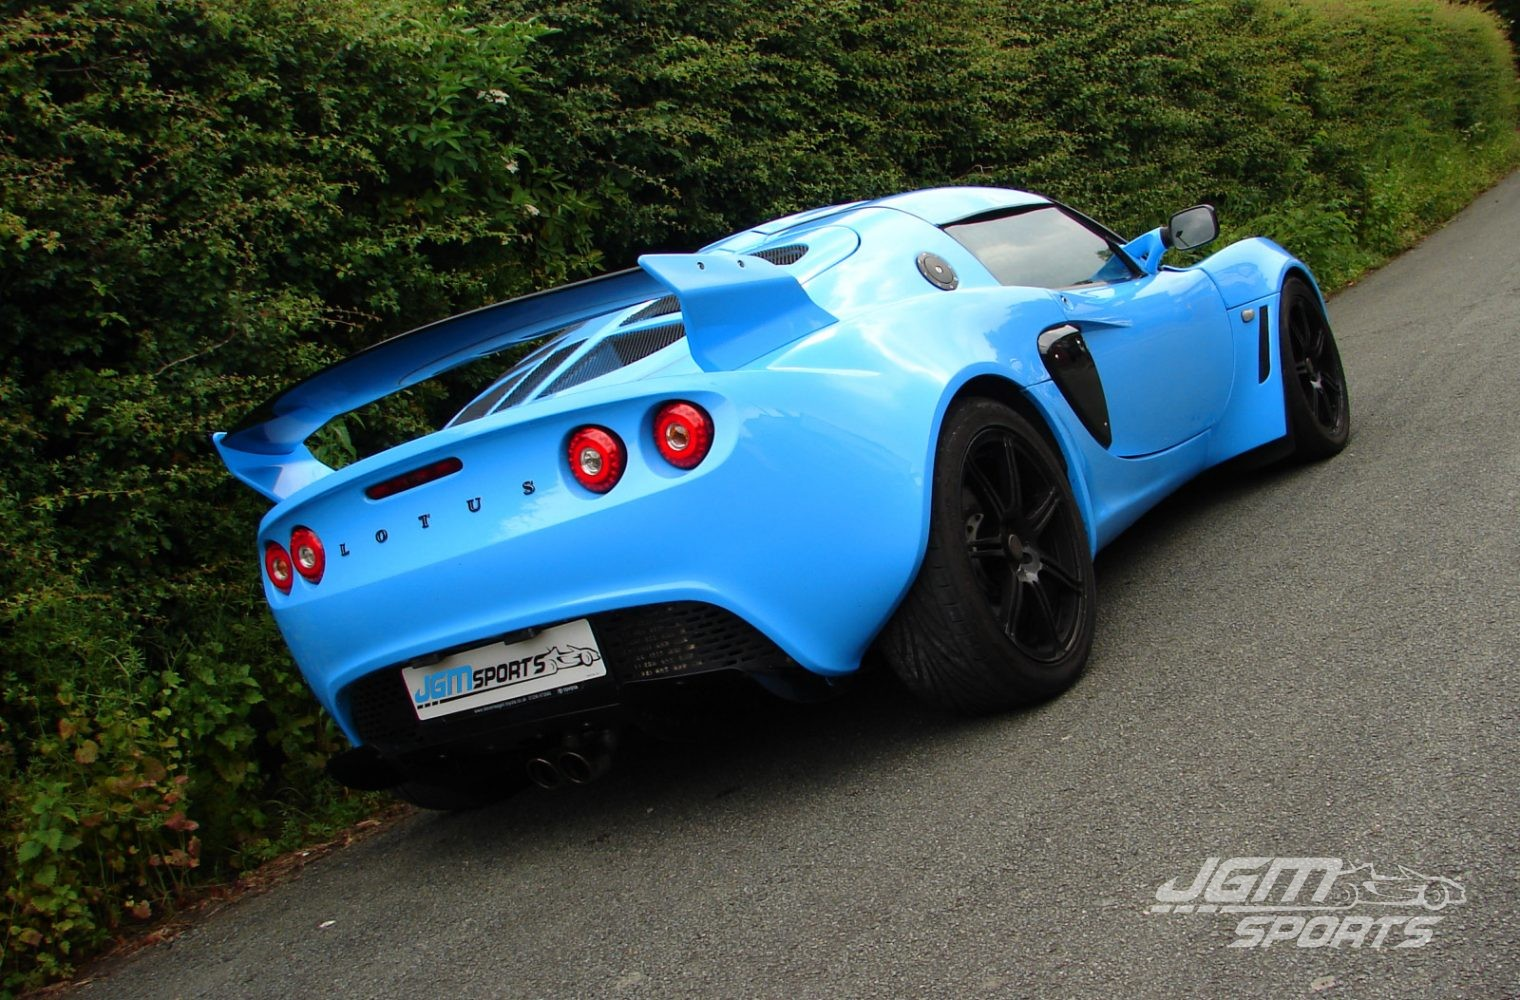 2006 s2 lotus exige s converted sports racer porsche riviera blue 230bhp jgmsports. Black Bedroom Furniture Sets. Home Design Ideas